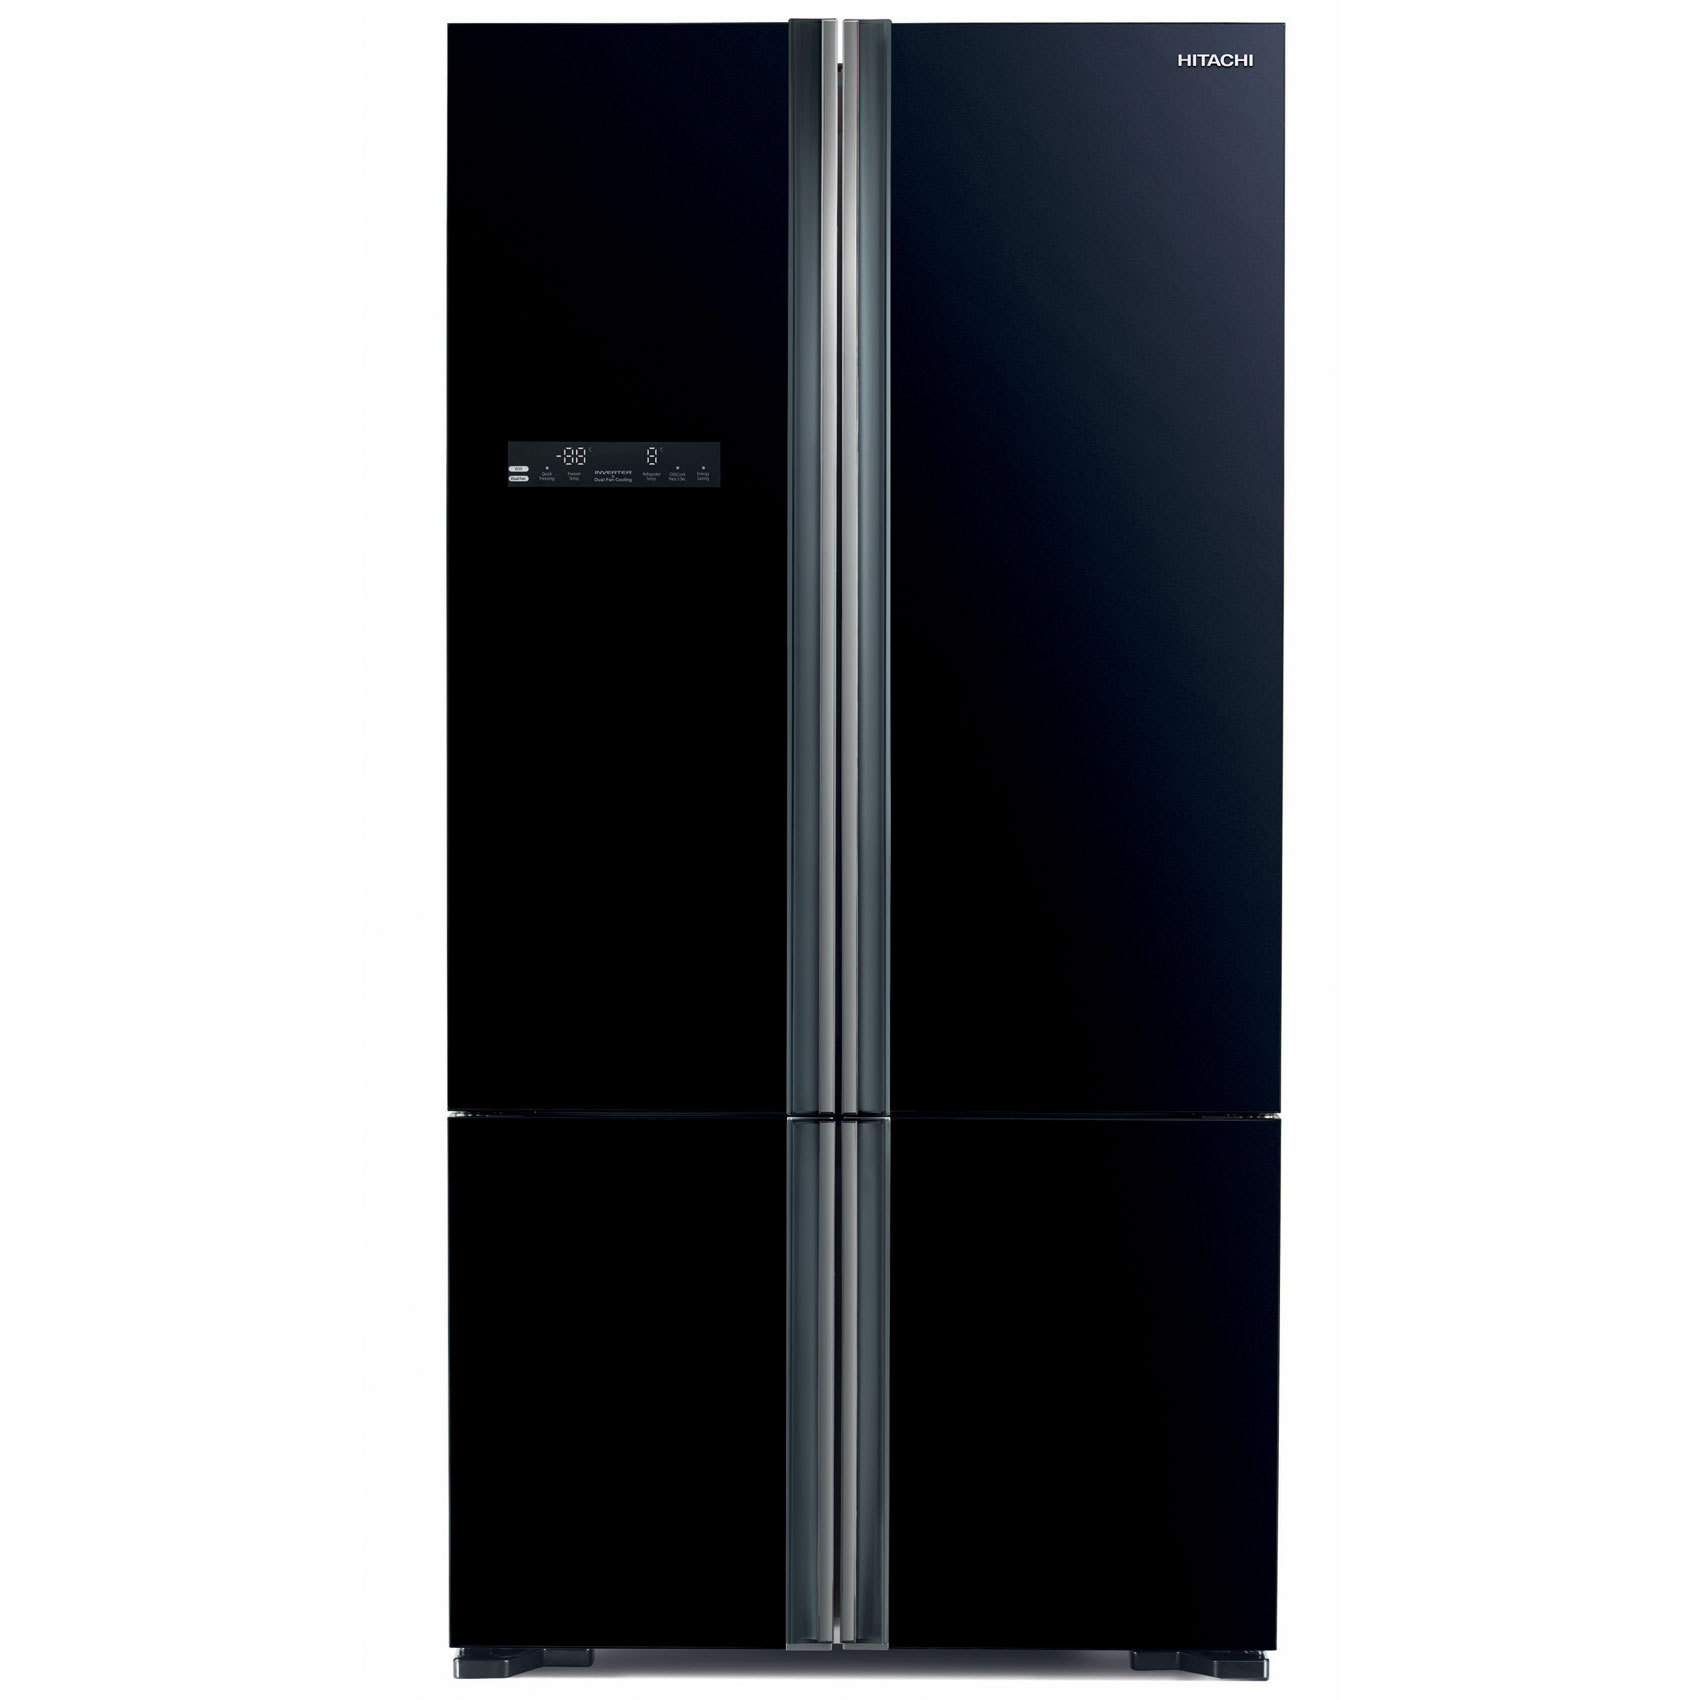 HITACHI FRIDGE SBS RWB800PUK5GBK